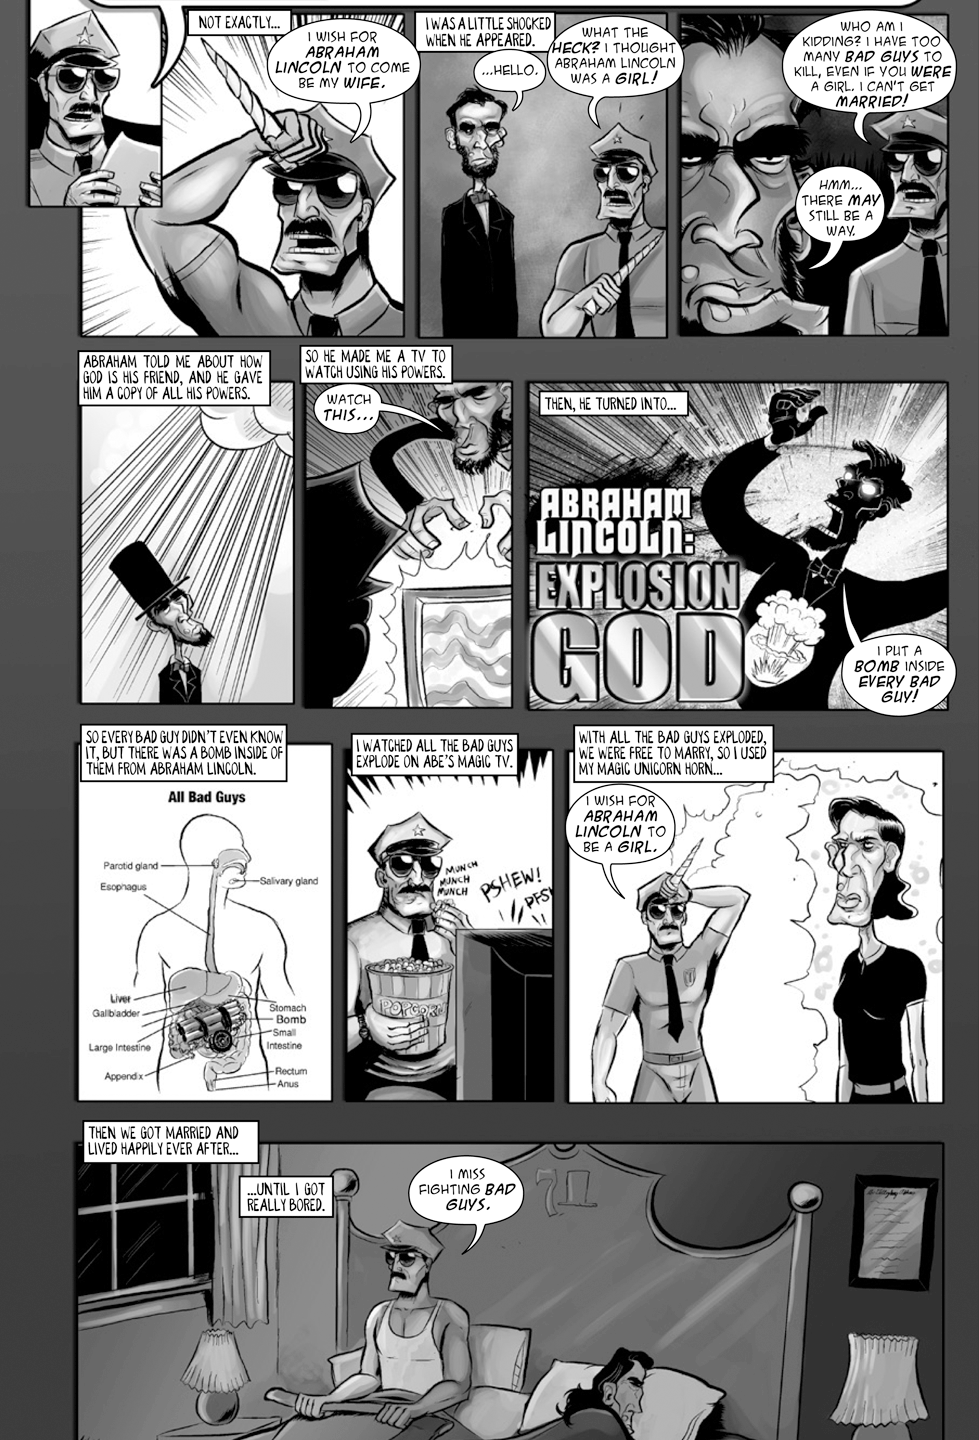 """One of the most bizarre moments in Axe Cop history (and that's saying something) is when he marries Abe Lincoln after turning him into a woman. It came based on the fact that Malachai didn't actually know anything about Lincoln when he answered this question and for some reason thought """"Abraham"""" sounded like a girl's name. Original post: Original post: http://axecop.com/comic/ask-axe-cop-24/"""